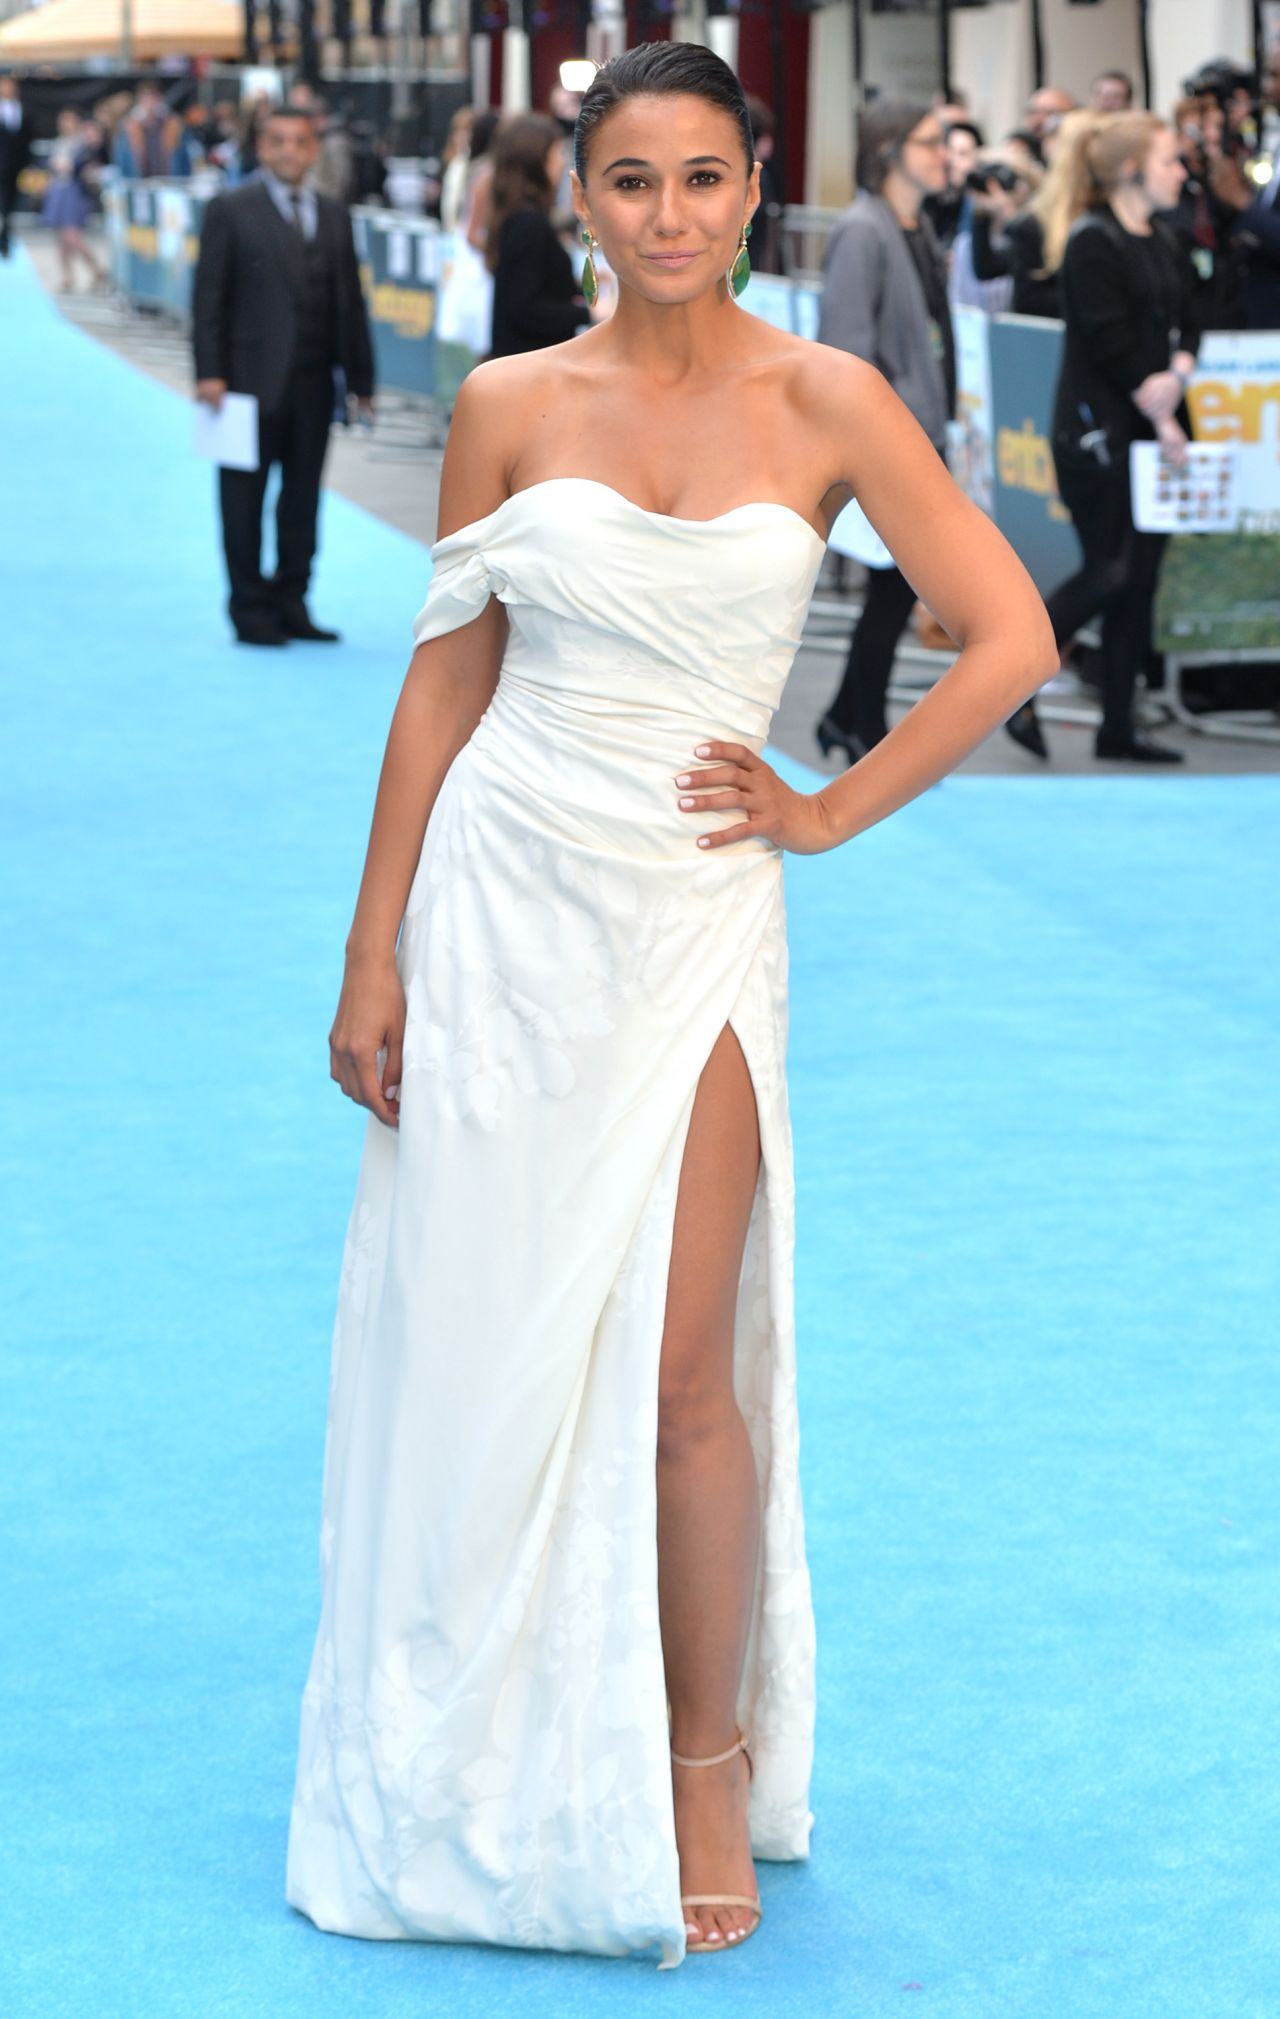 Emmanuelle Chriqui Entourage Premiere In London